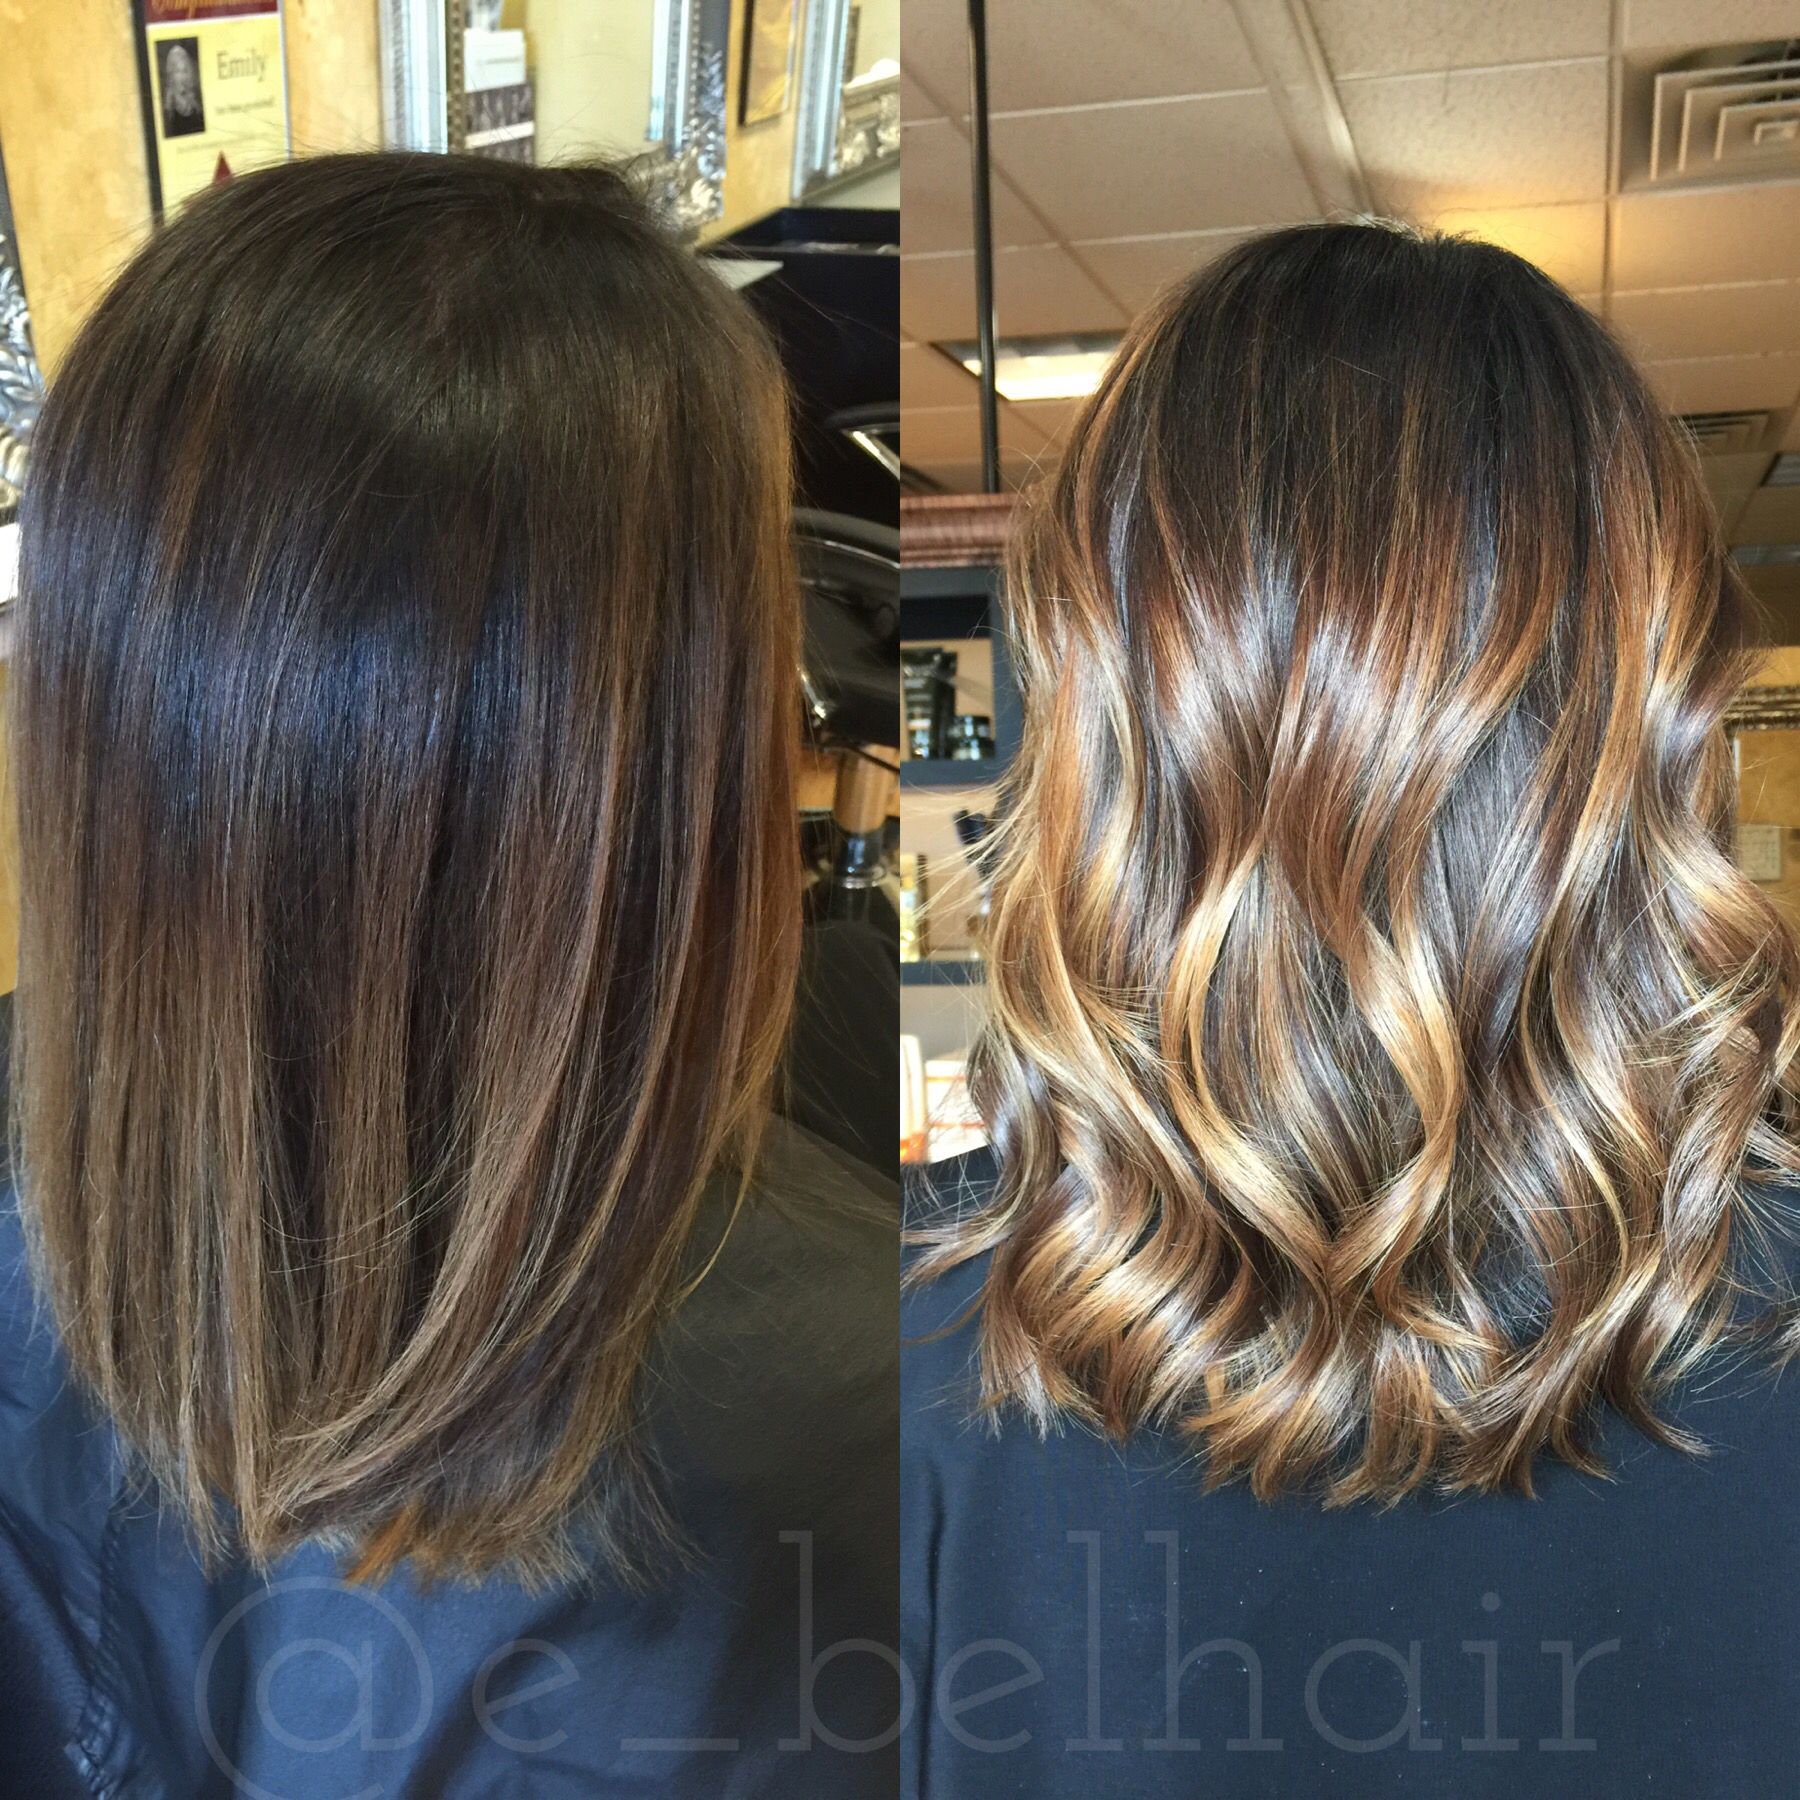 Straight Vs Curled Loving Both Looks After Fresh Balayage Balayage Straight Hair Balayage Hair Hair Styles